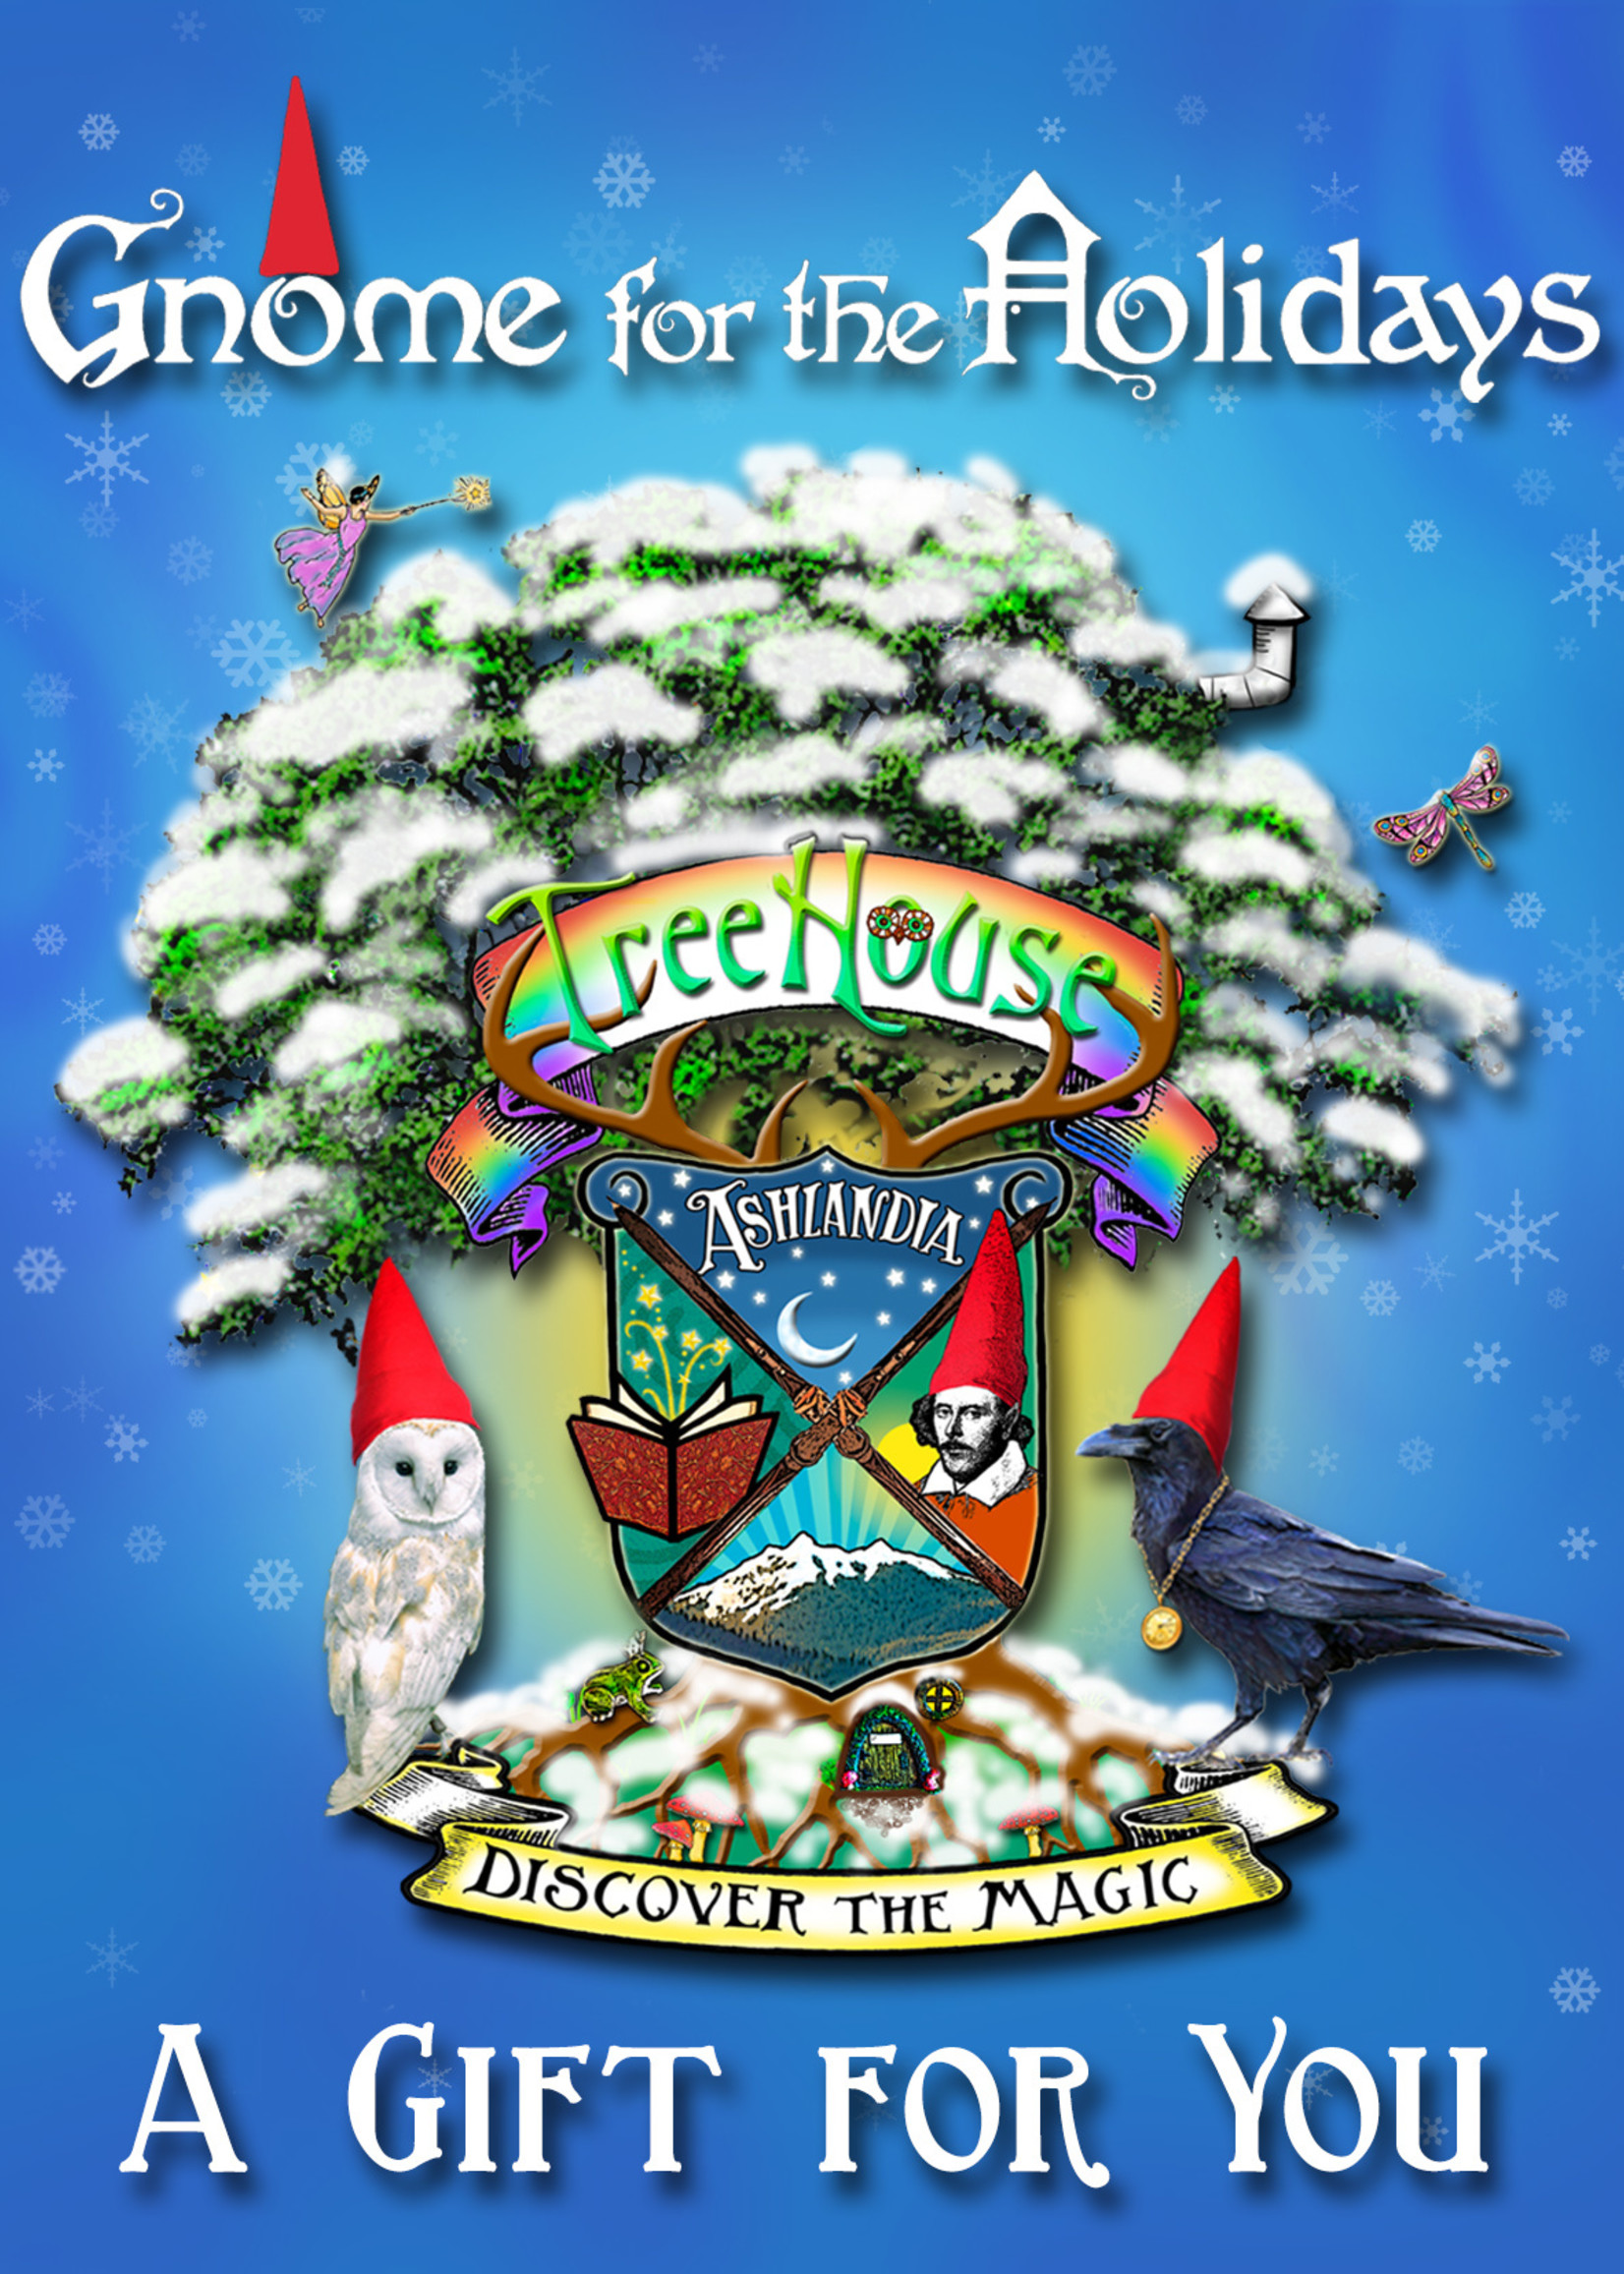 TreeHouse Gift Certificate $25.00, Web Sale